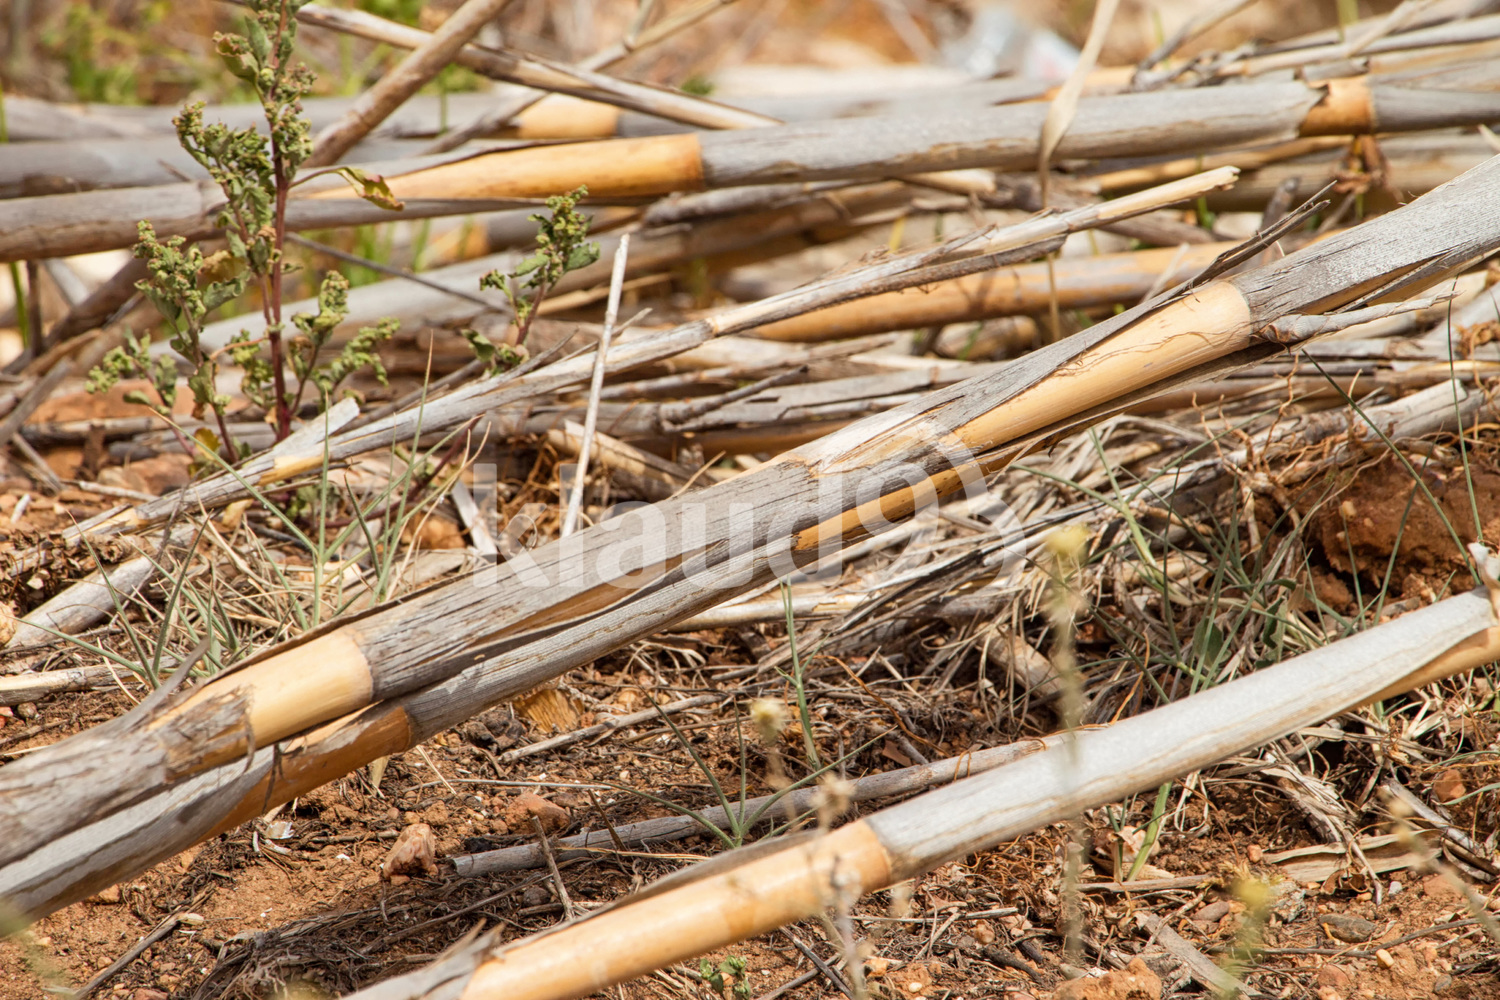 Old dry reeds lie on the ground